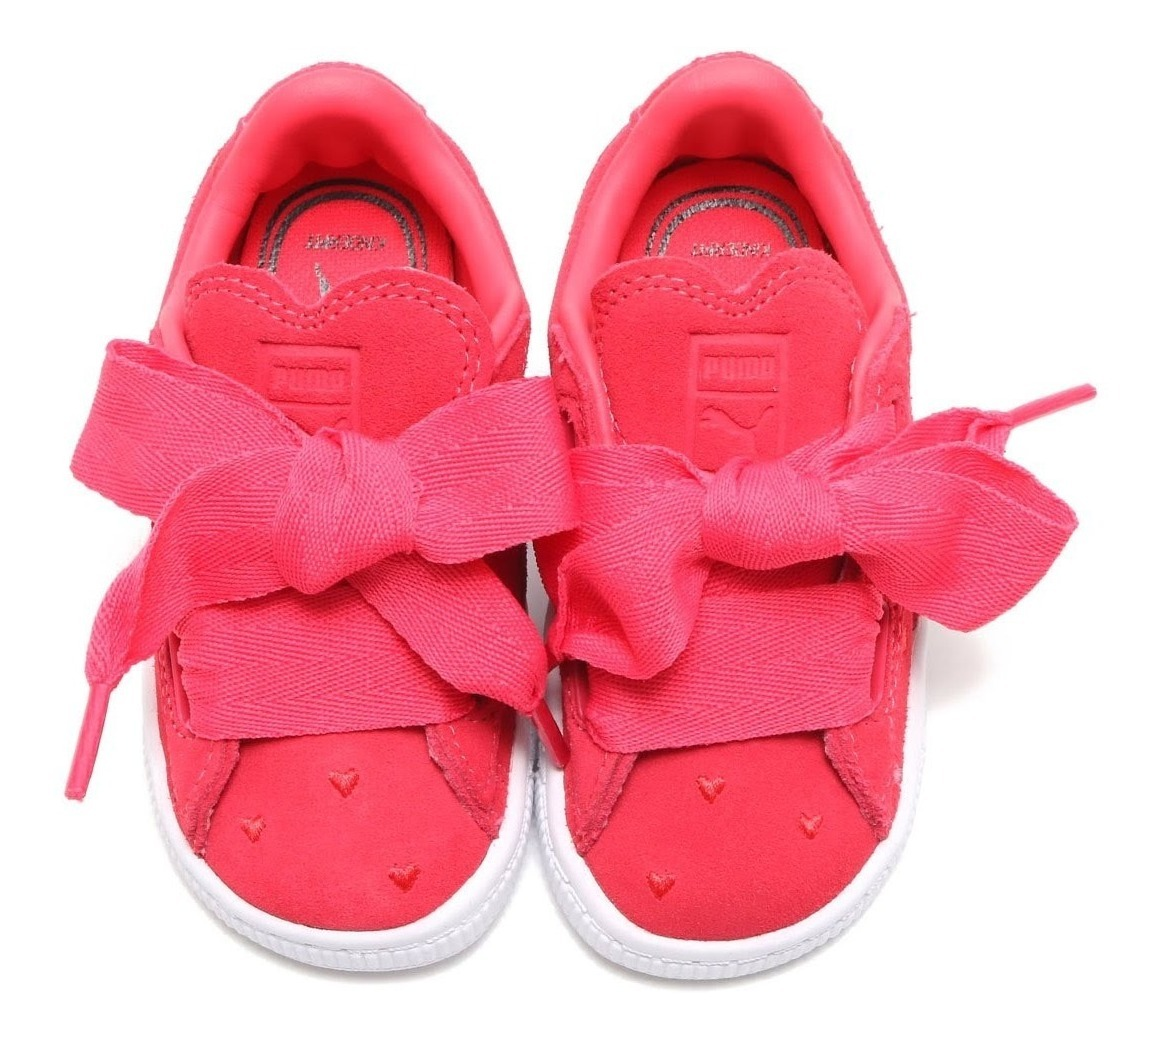 new arrival 06f77 a2aed Tenis Puma Suede Heart Valentine Infant 365137-01 Rosa